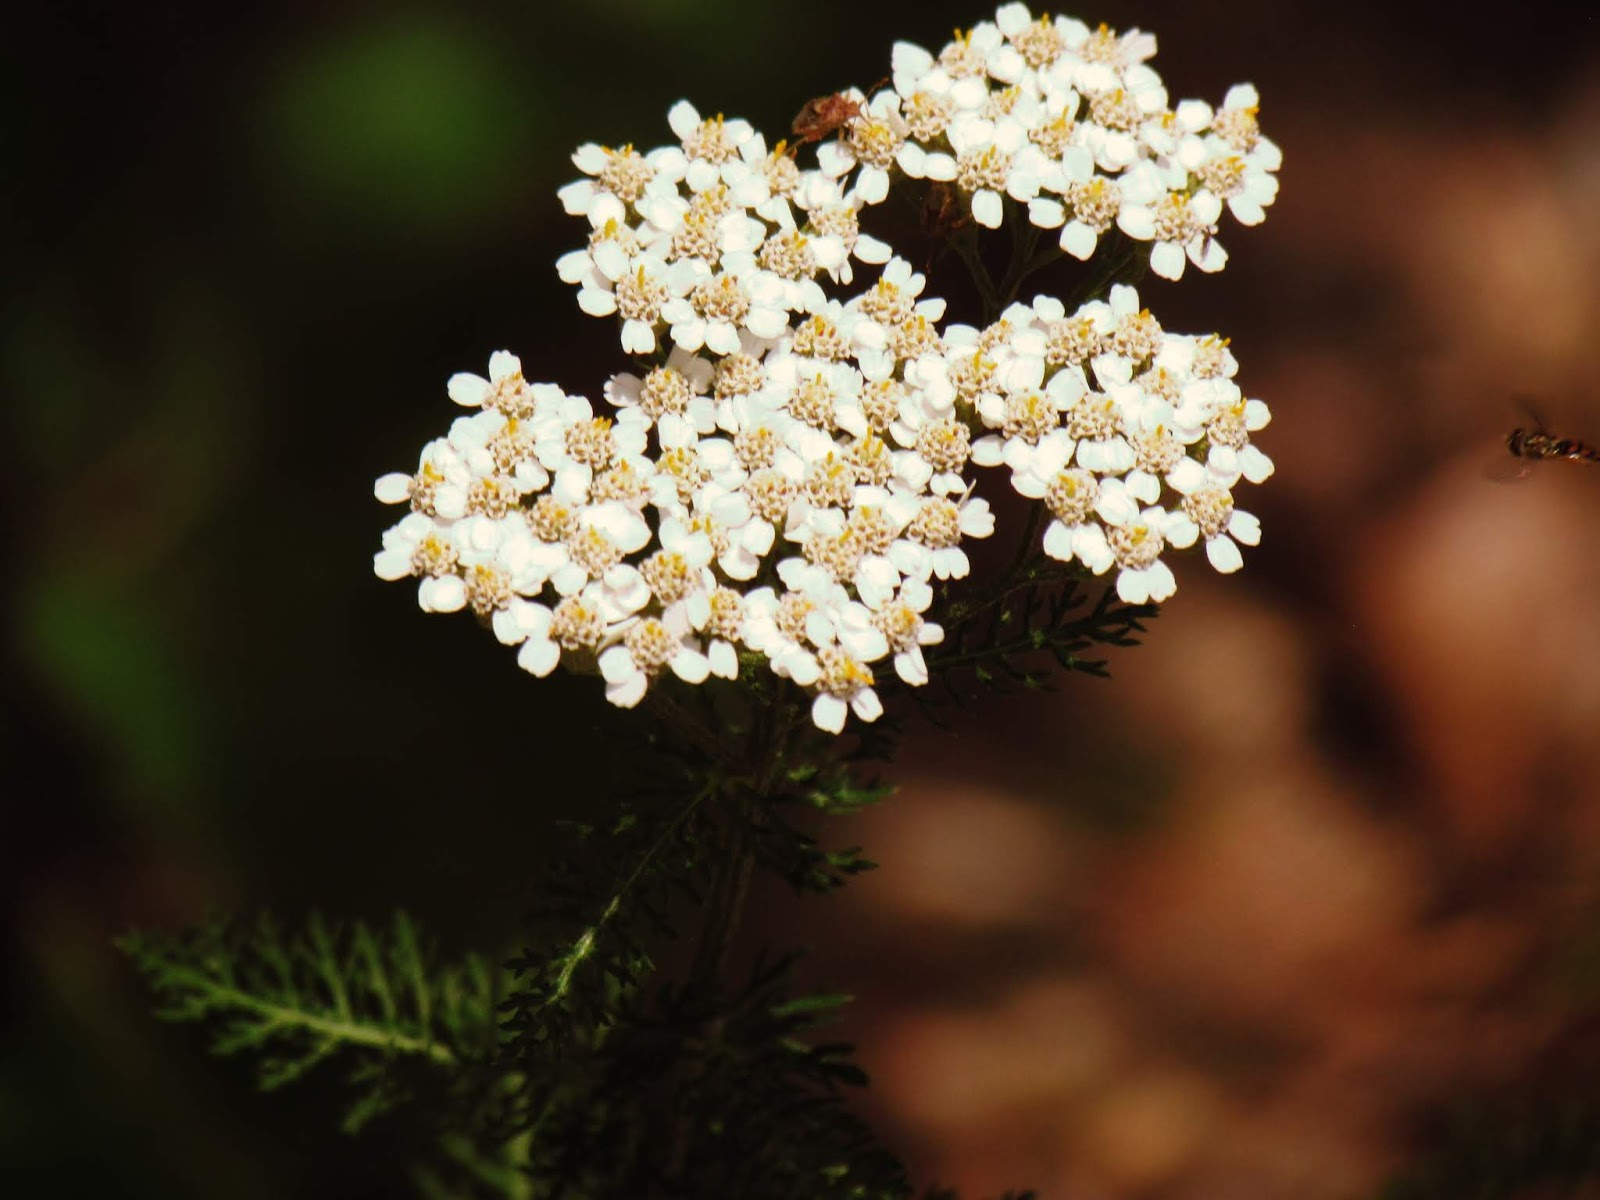 Working with white yarrow healing properties + magical flower properties for botanicals